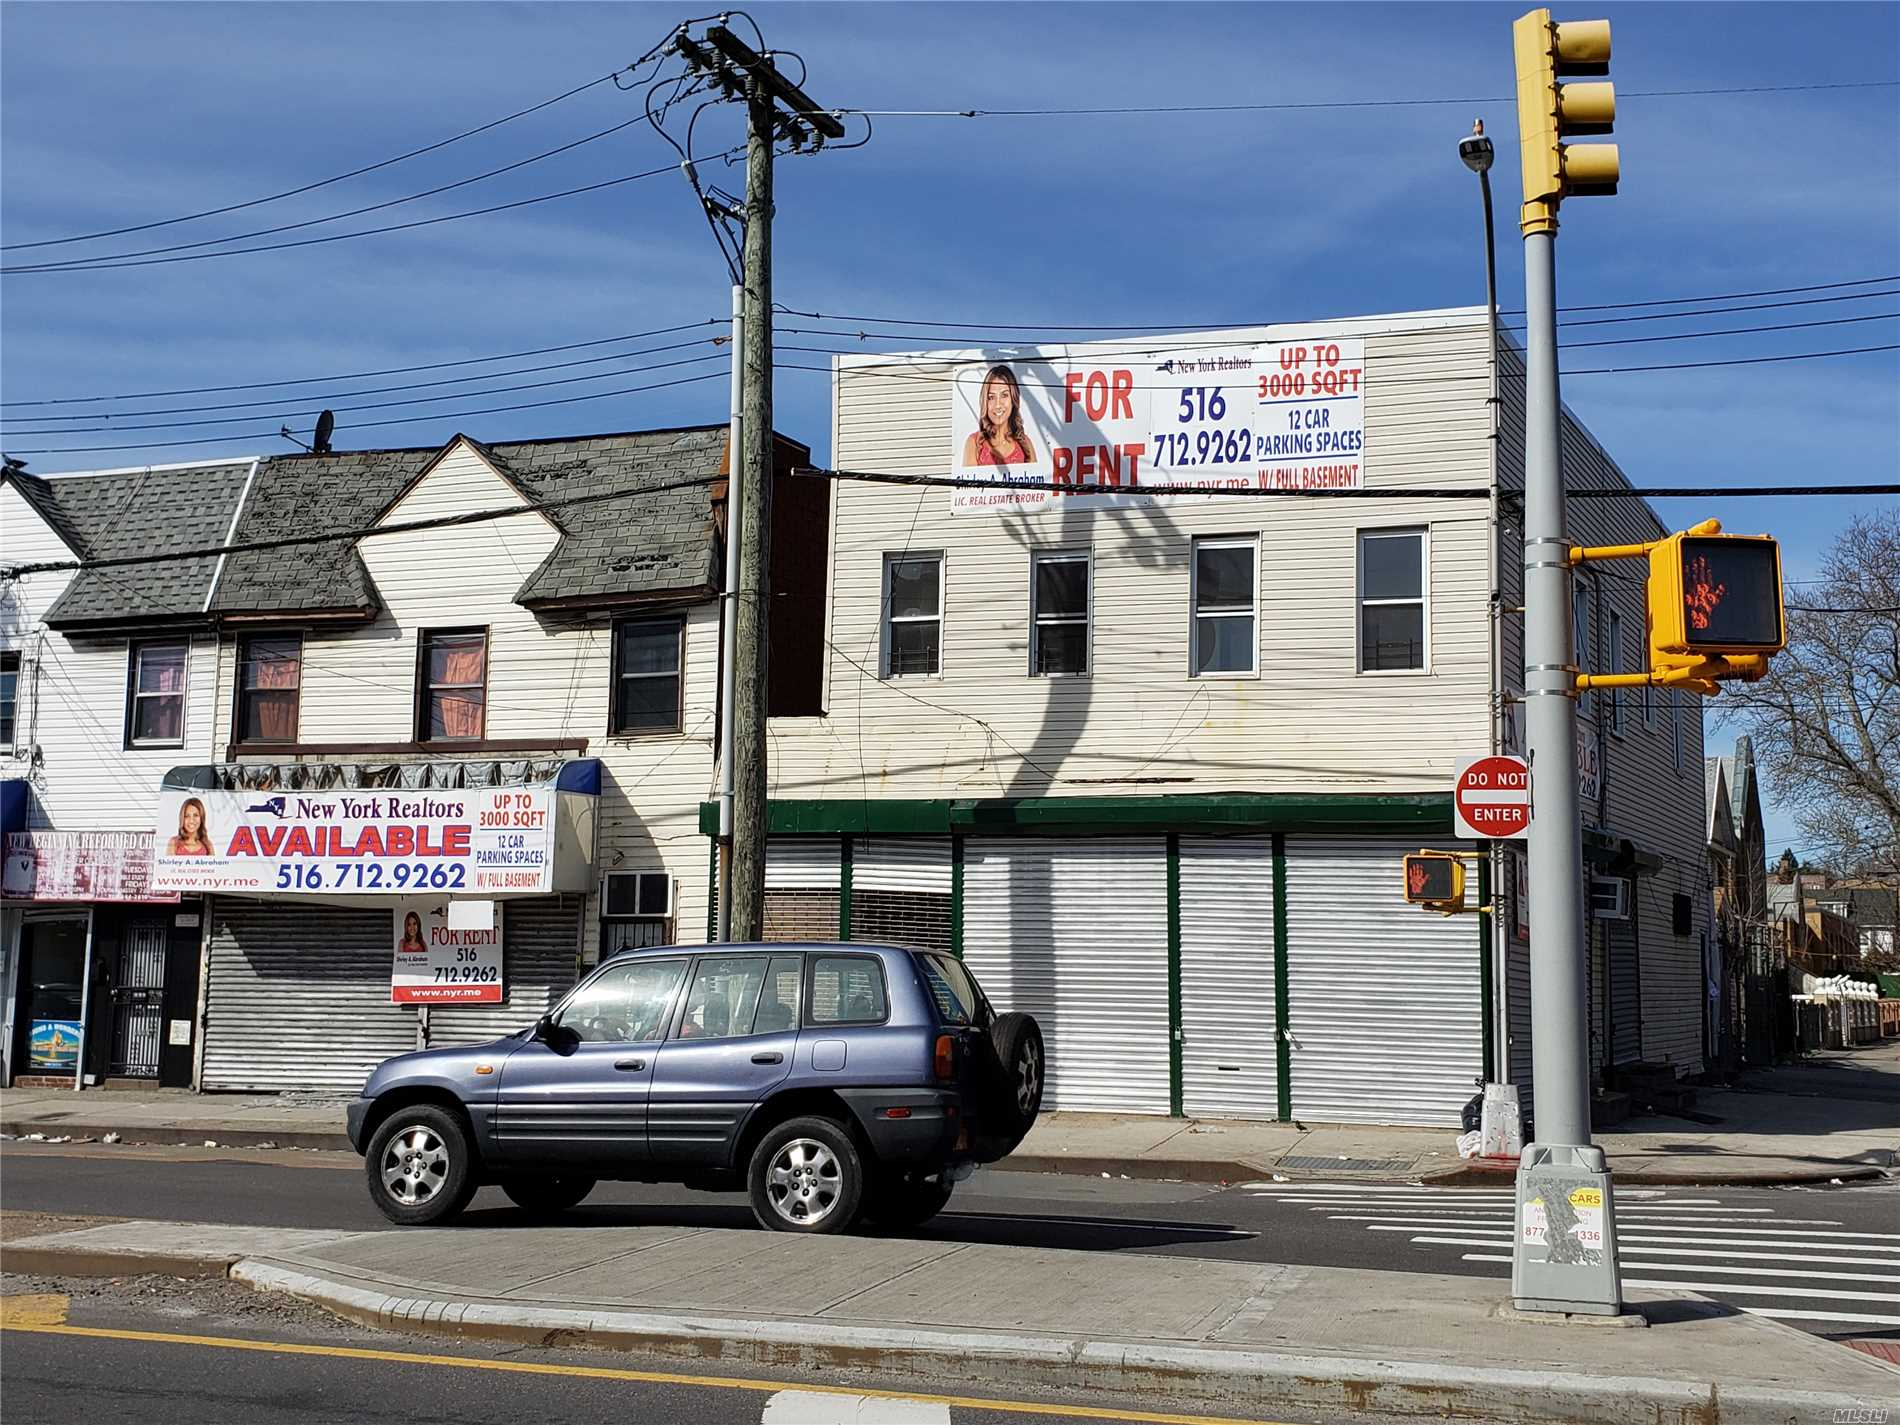 3000 Square Feet Corner Property In The Heart Of Hollis Ideal For A Franchise / Grocery Store / Bank With 12 Parking Spaces An Additional $200.00 Per Spot Close To House Of Worship Shops Schools